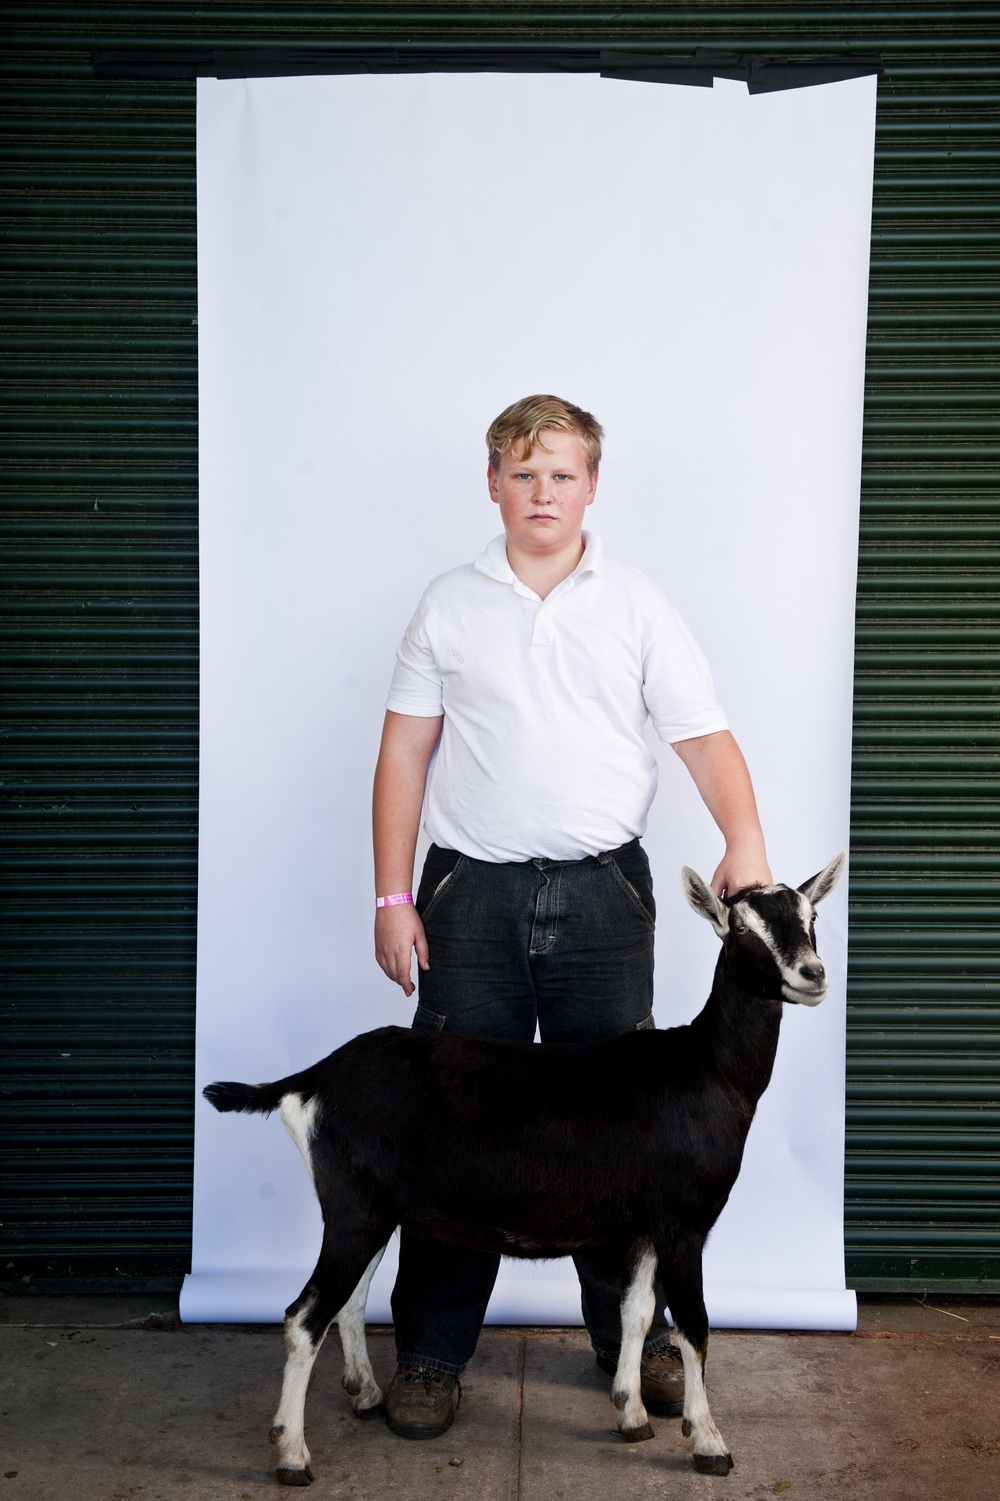 Joshua Seitter, 12, and Whiskey Lullaby stand for a portrait at the North Carolina State Fair on October 25, 2013.